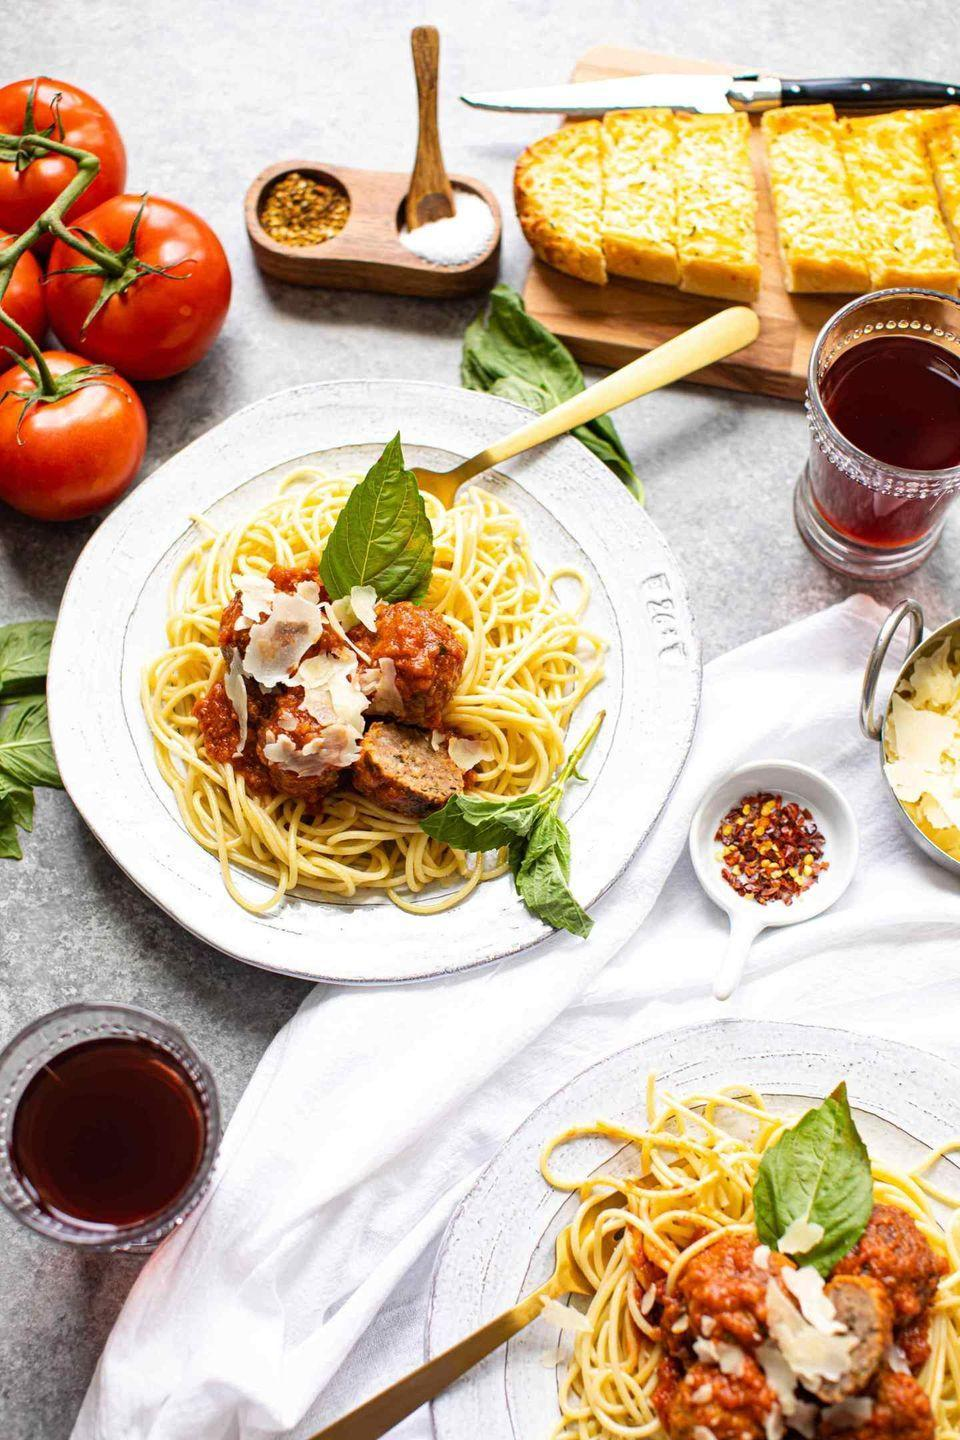 "<p>We all need an easy meatball recipe for last-minute marinara cravings. This one delivers.</p><p><em><a href=""https://www.butterbeready.com/the-best-easy-meatballs-recipe/"" rel=""nofollow noopener"" target=""_blank"" data-ylk=""slk:Get the recipe from Butter Be Ready »"" class=""link rapid-noclick-resp"">Get the recipe from Butter Be Ready »</a></em></p>"